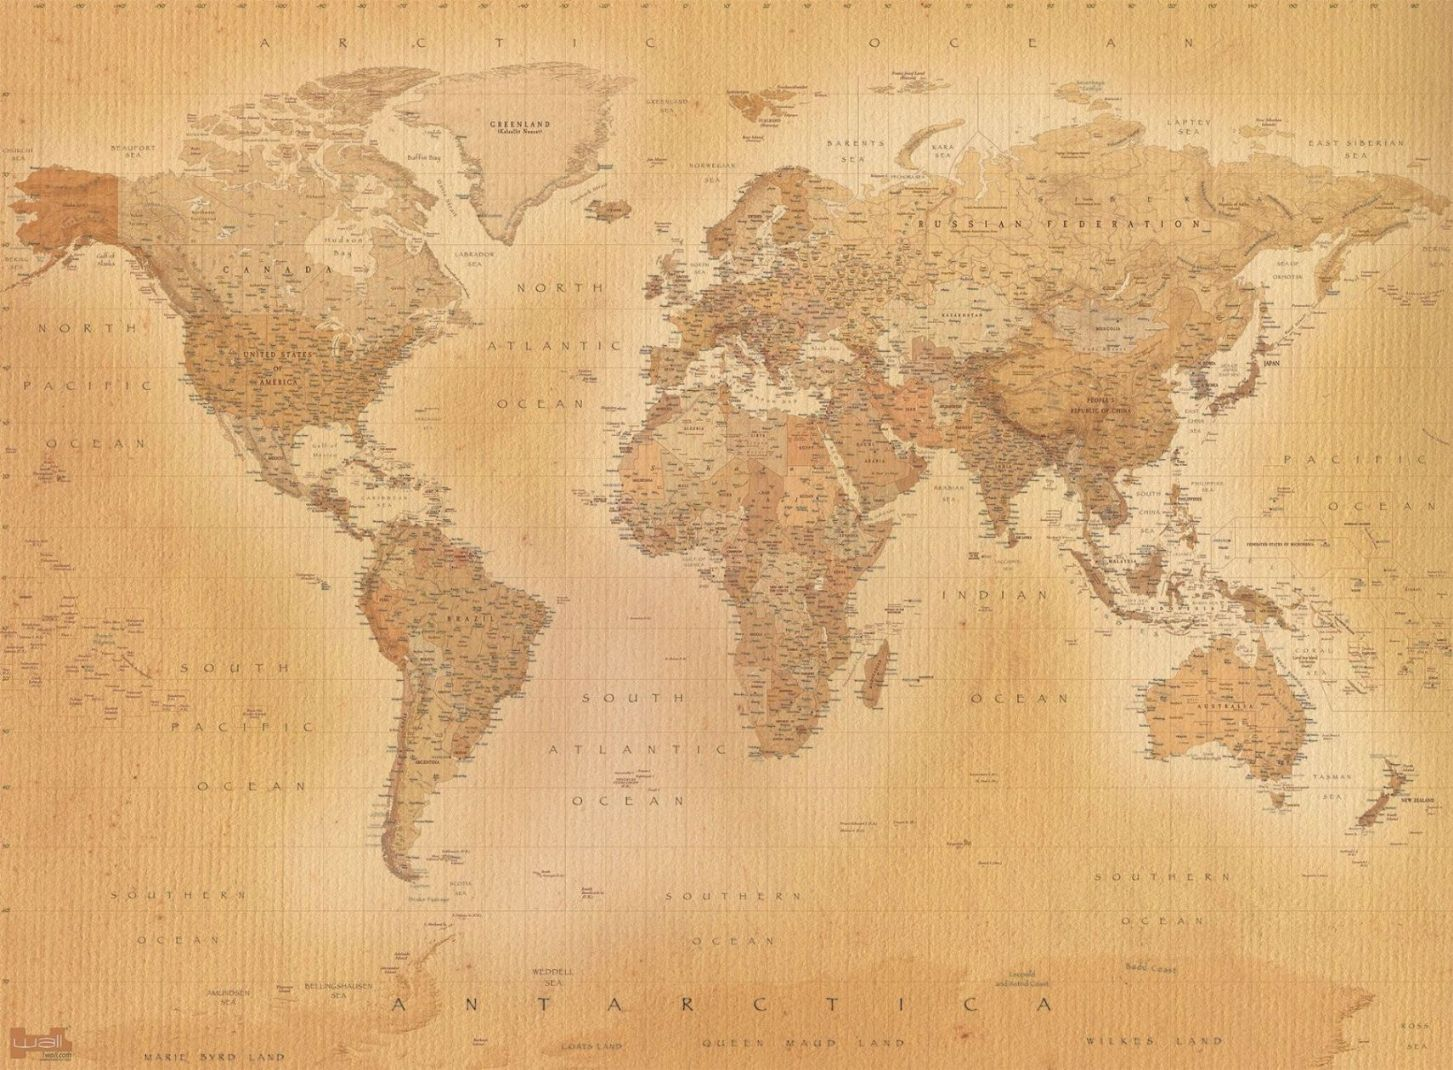 Old style vintage world map wallpaper wall mural 232m x 315m new shop categories gumiabroncs Image collections